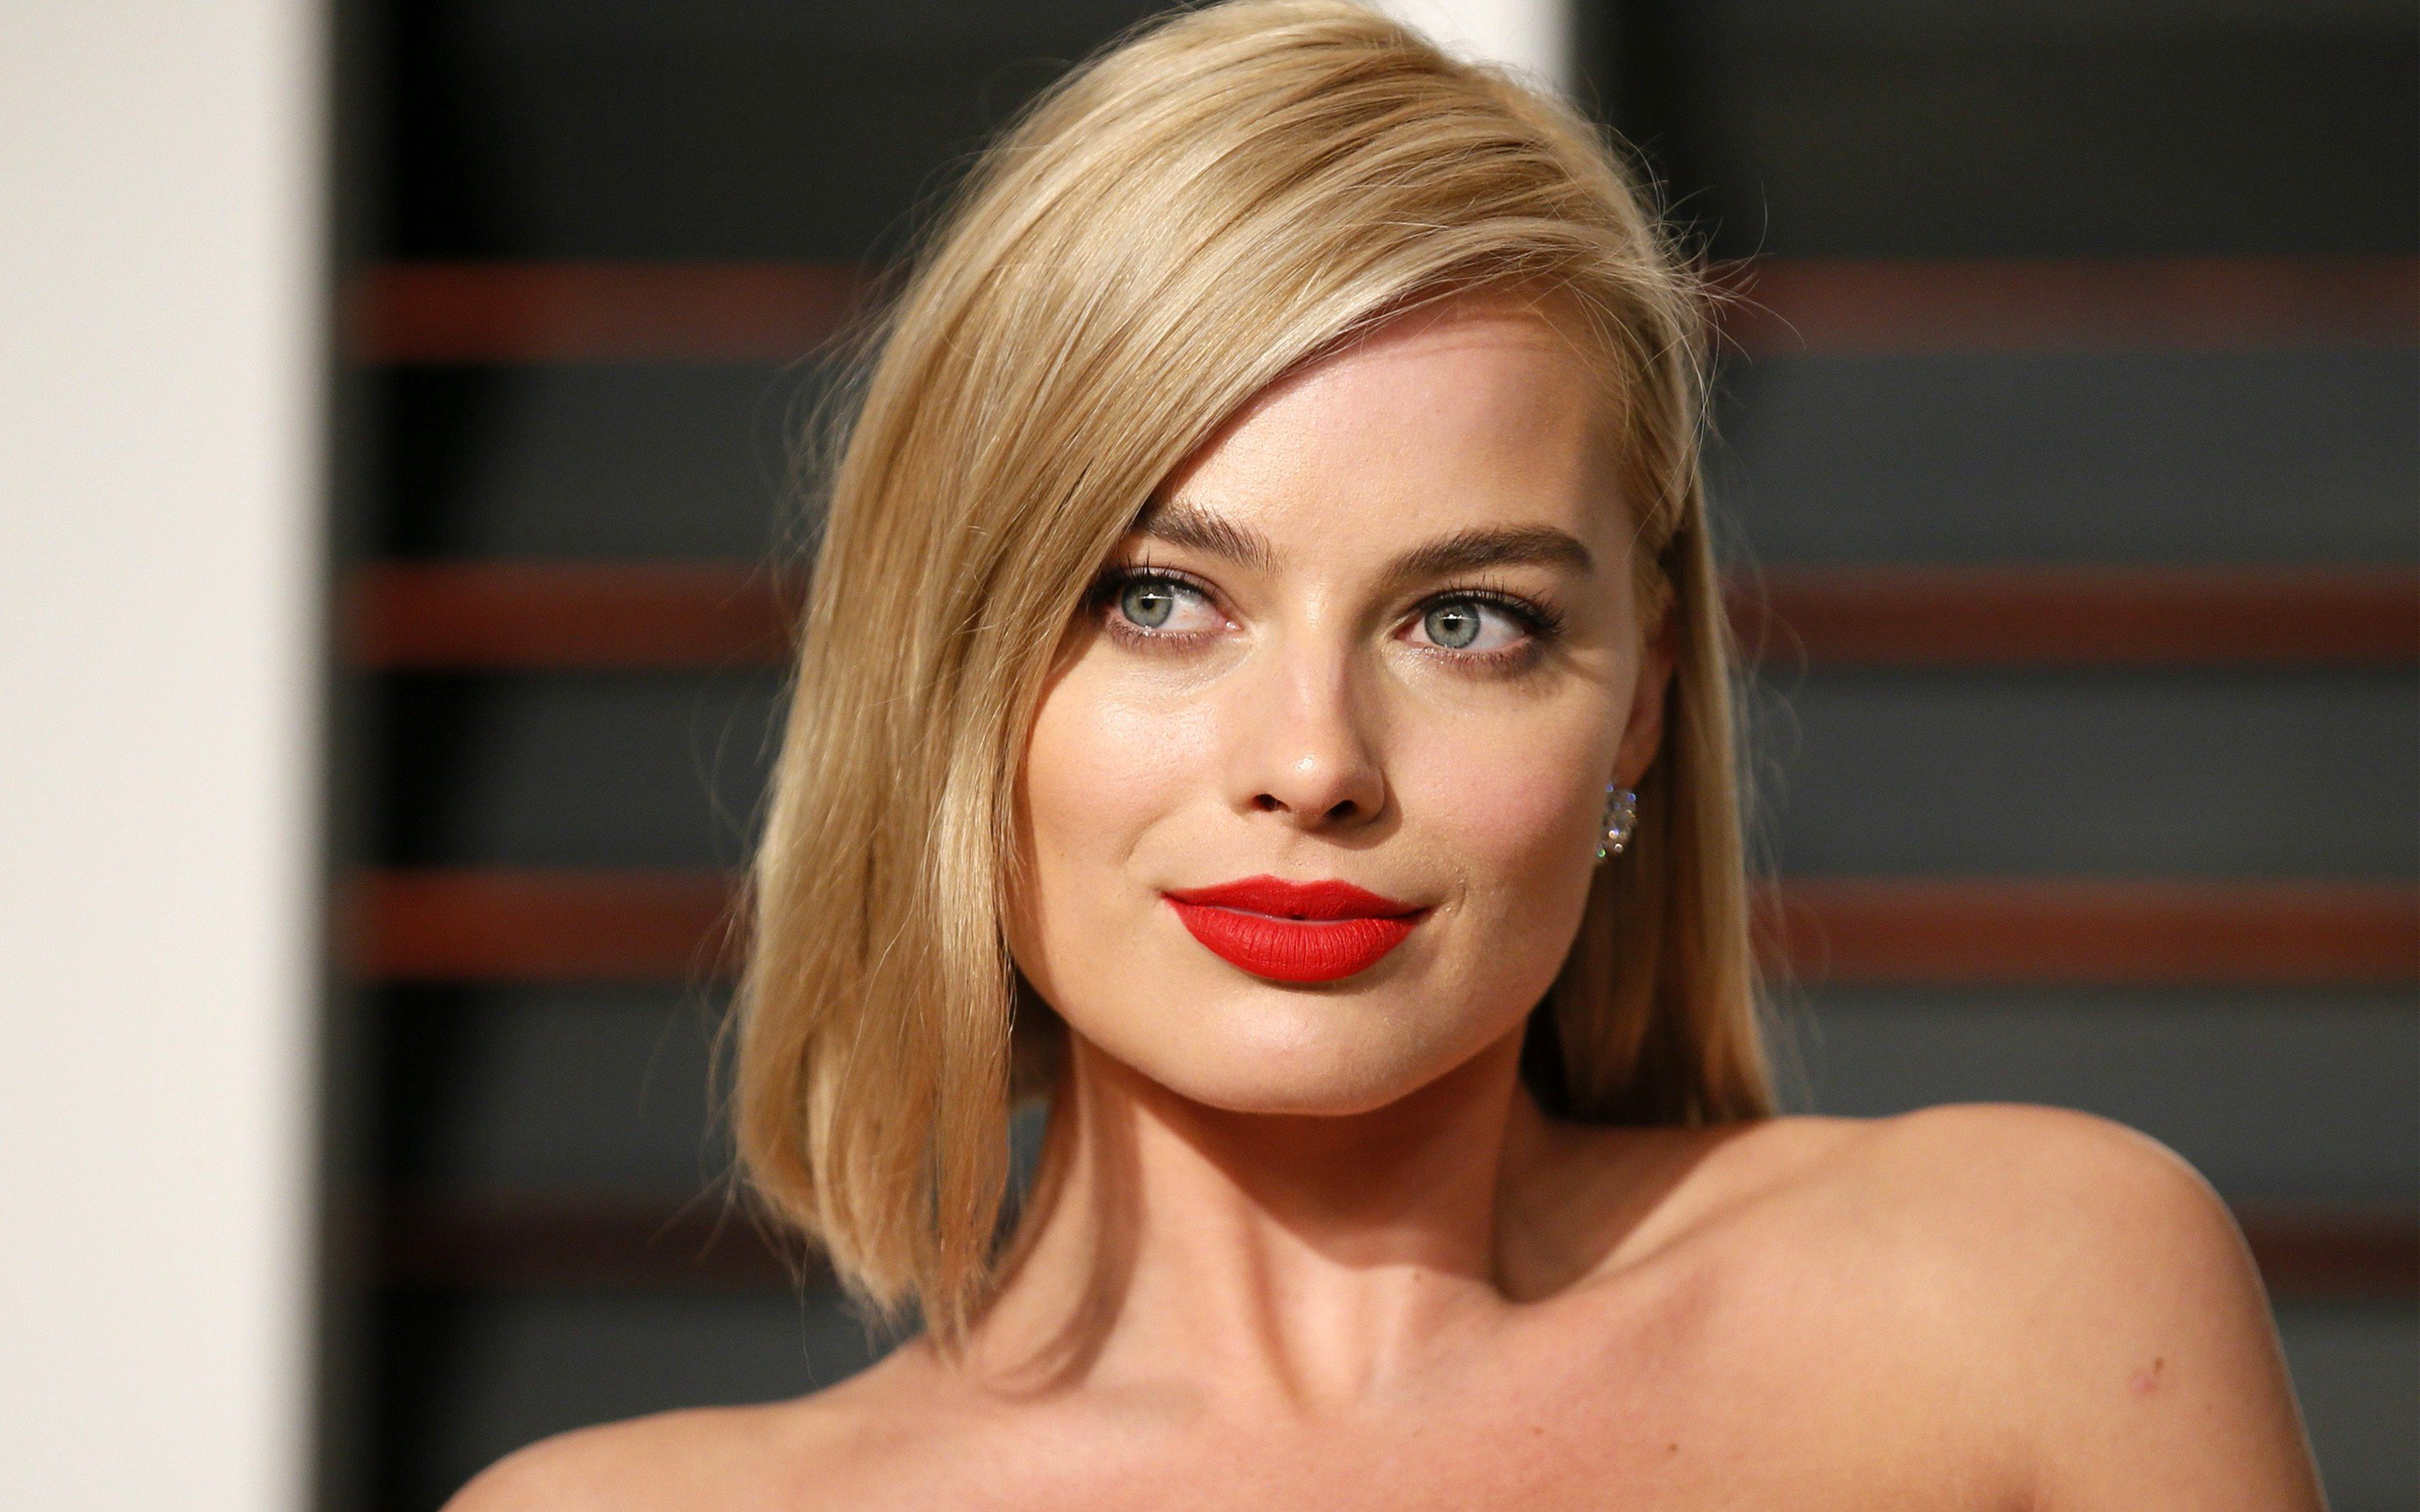 531 margotrobbie wallpapers, celebrities wallpapers, girls wallpapers